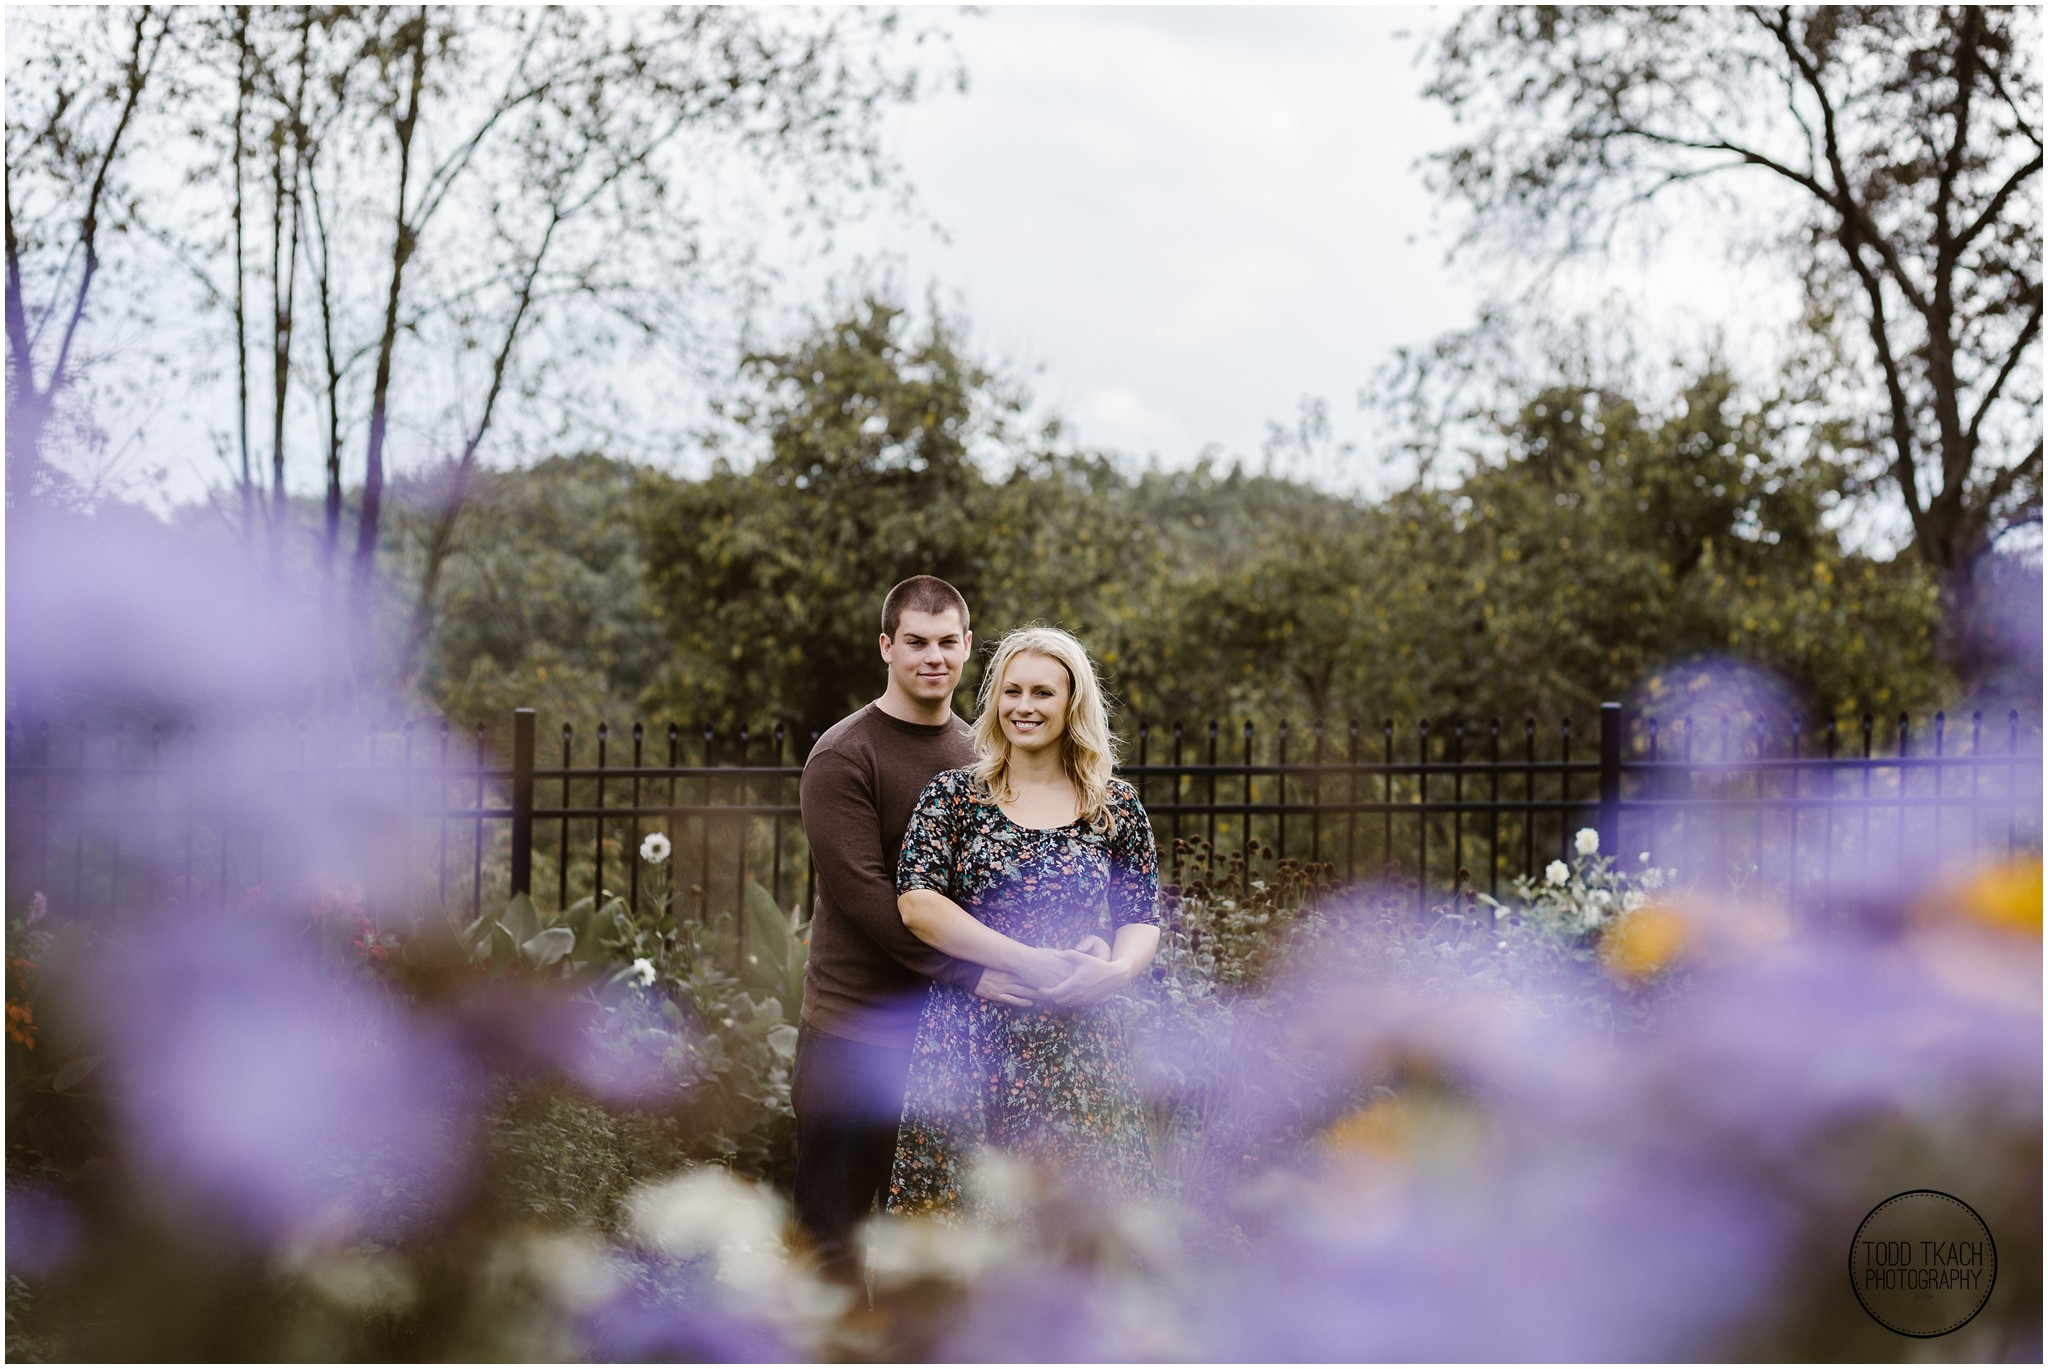 Christie & Scott - Hartwood Flower Gardens Portrait